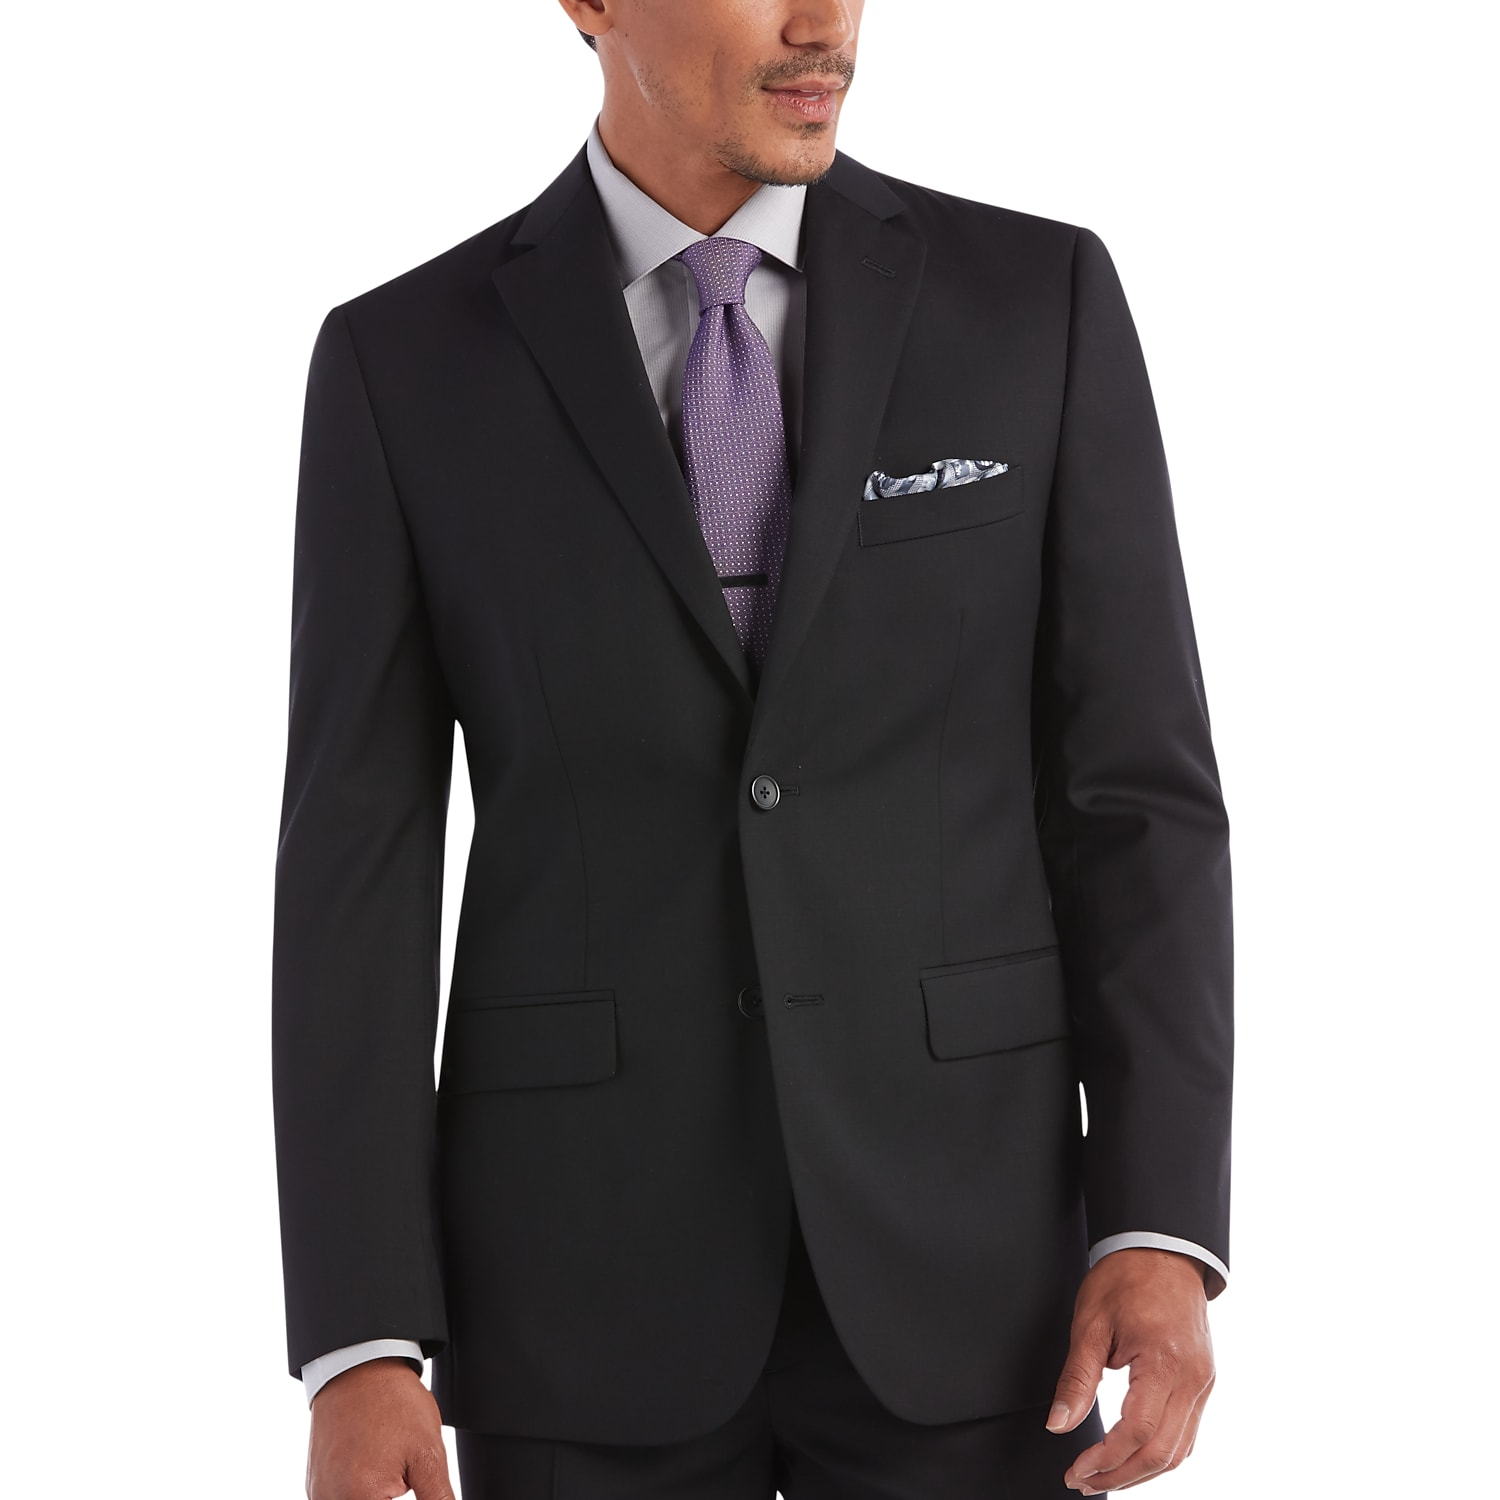 Highest Thread Count Suit The 100 Best Christmas Gifts Of